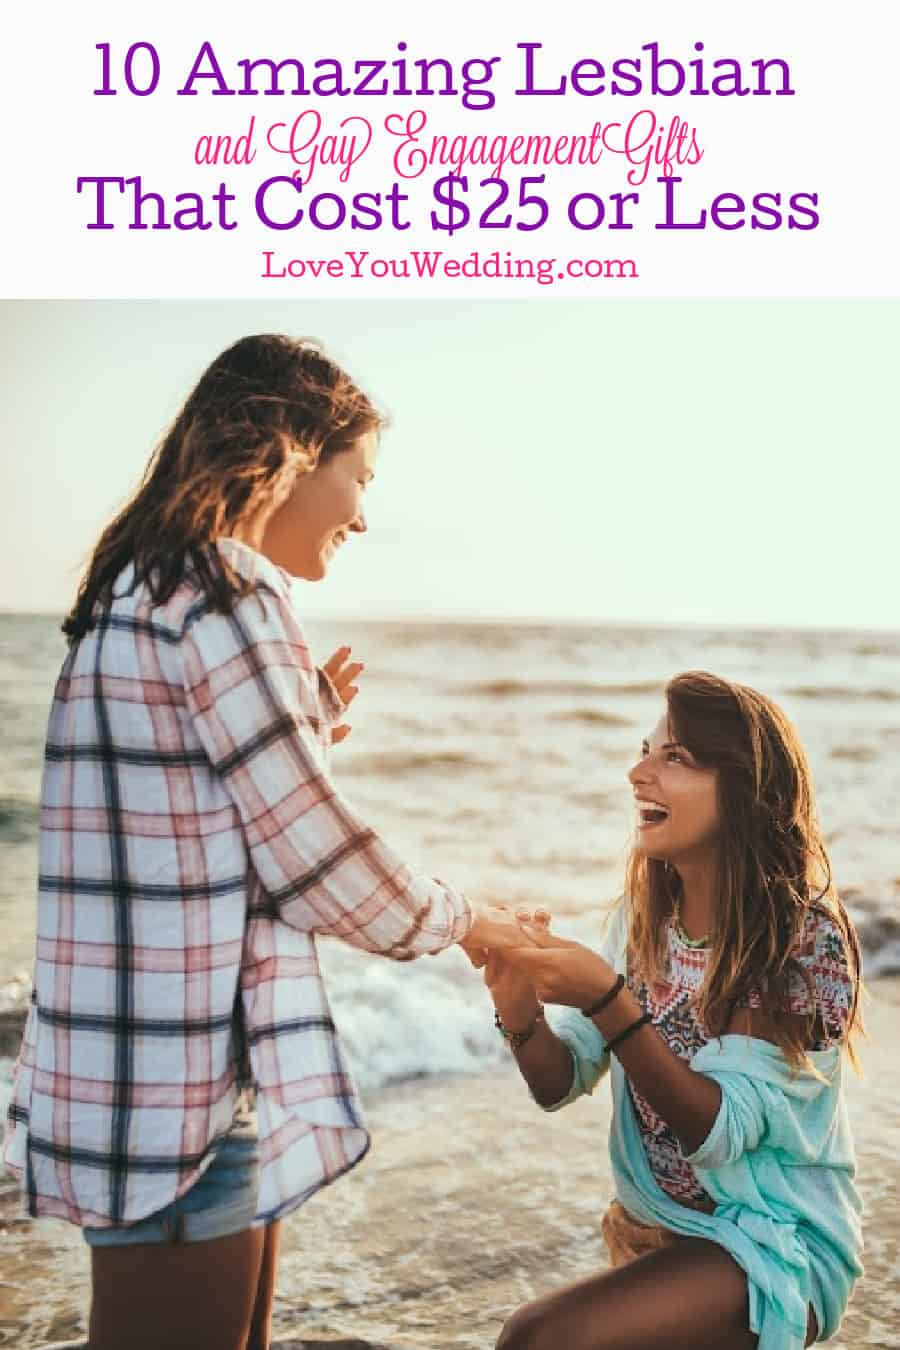 Looking for lesbian and gay engagement gifts under ? We reviewed 10 items that are affordable yet look classy too! Check them out!